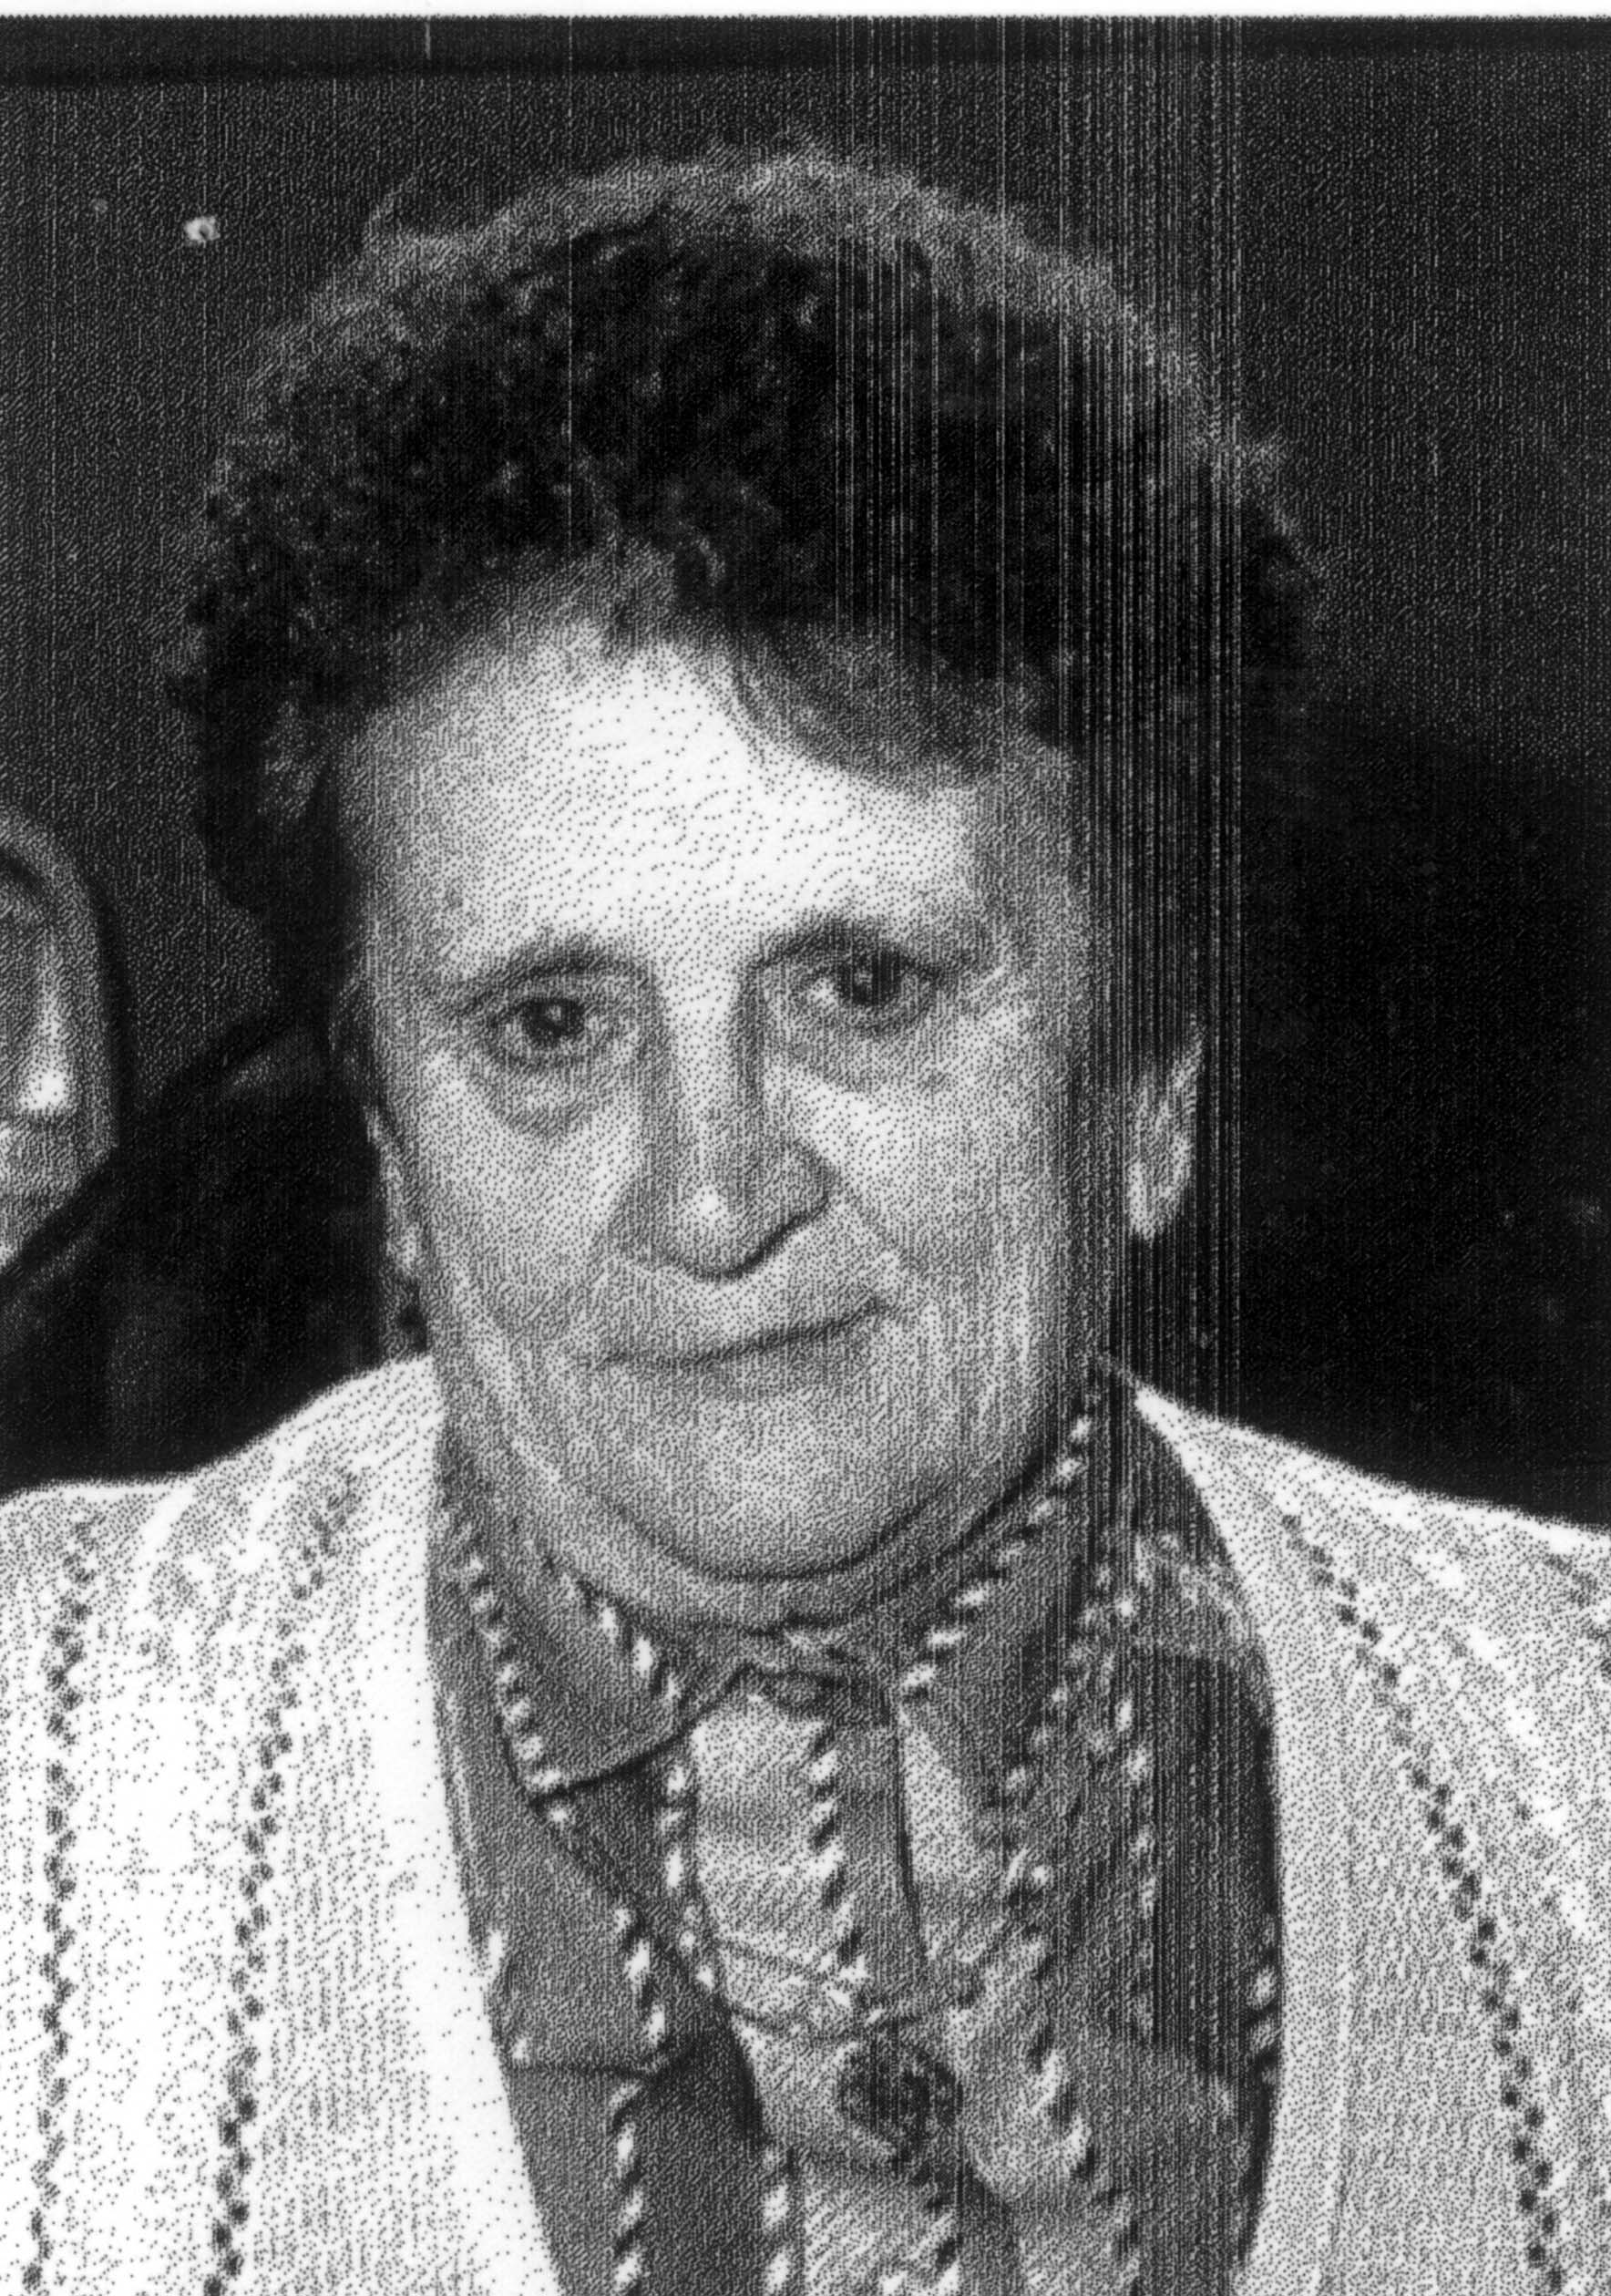 henriette personals History the original members of the group were louis hendrik potgieter, steve bender, leslie mándoki, edina pop and the husband and wife pair wolfgang and henriette heichel.